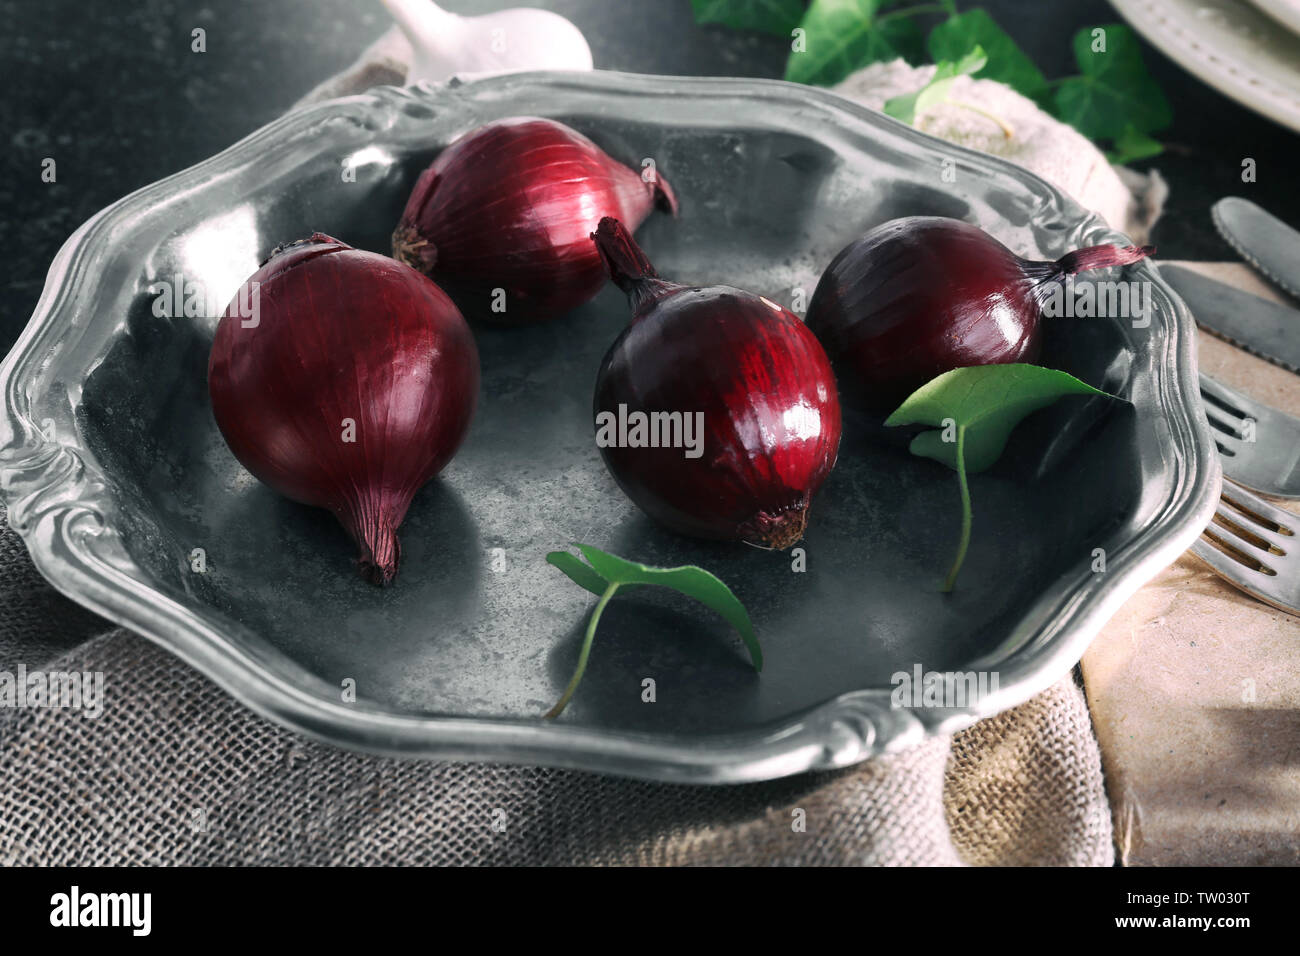 Silver bowl with red onion on gray table, closeup - Stock Image